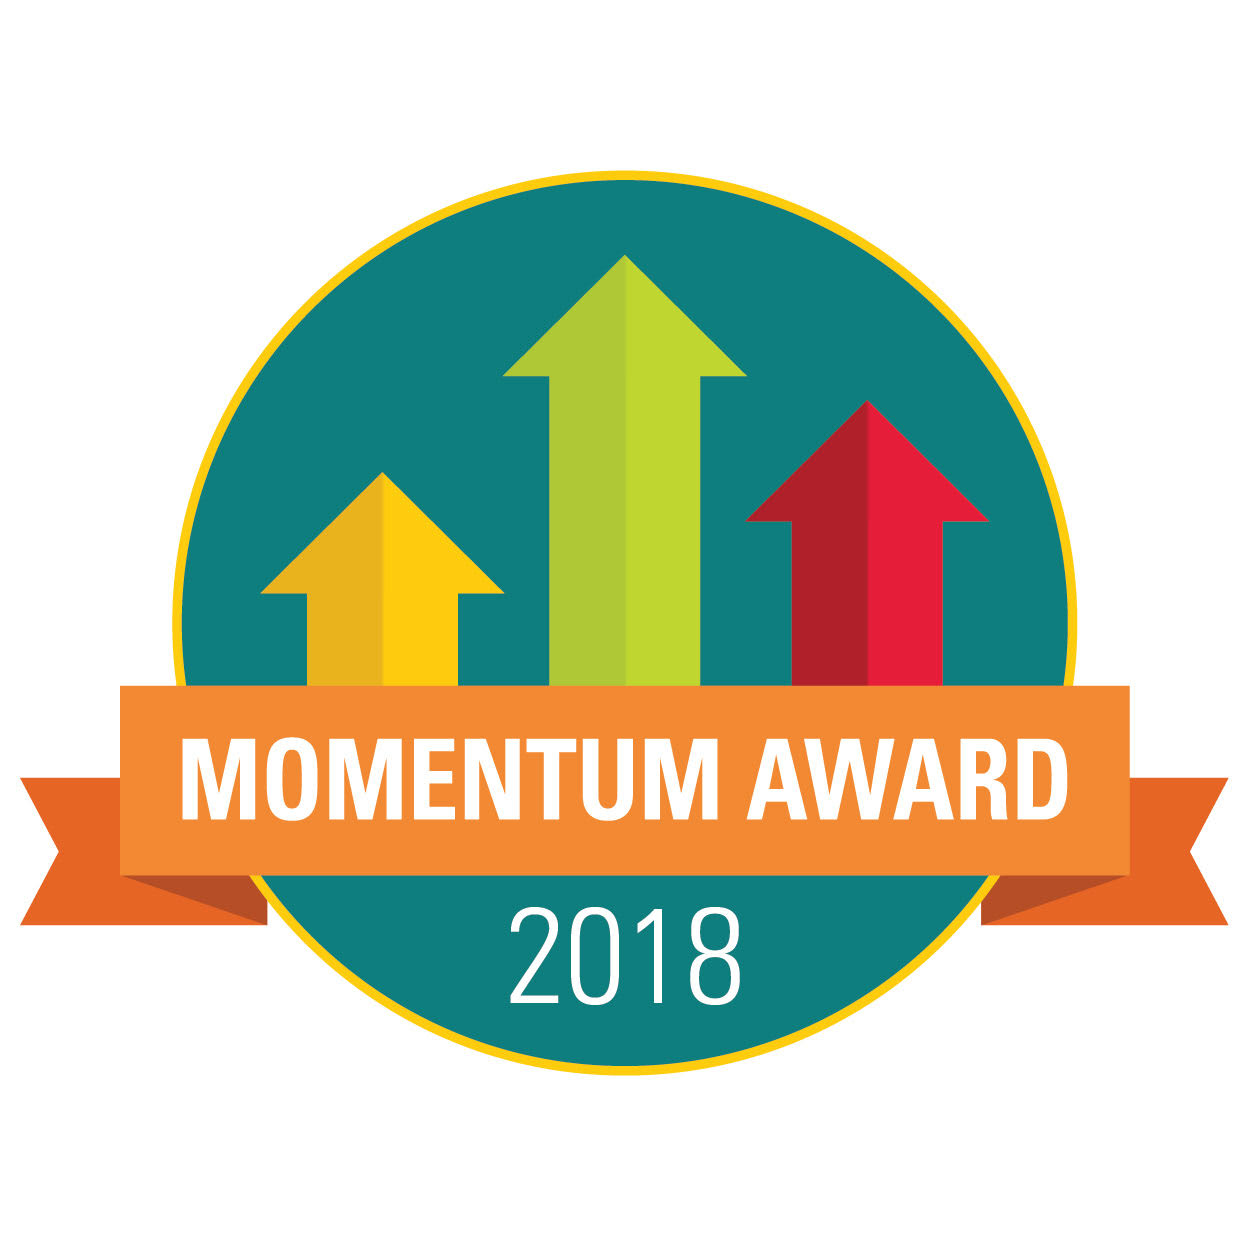 Momentum Award 2018 Graphic